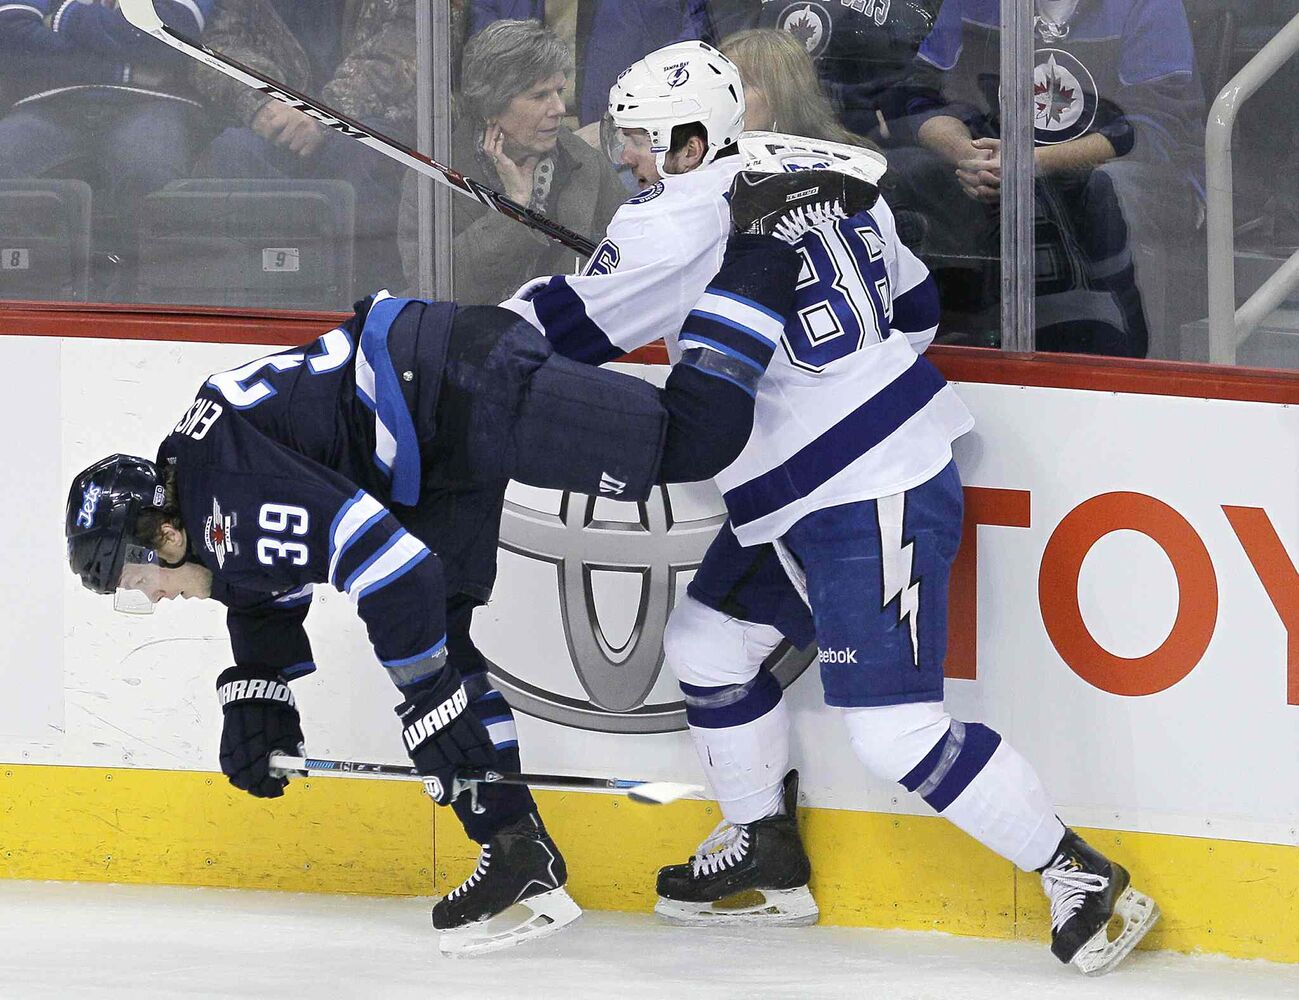 Winnipeg Jets' Tobias Enstrom (39) is checked by Tampa Bay Lightning's Nikita Kucherov (86) during the first period Tuesday. (John Woods / Winnipeg Free Press)